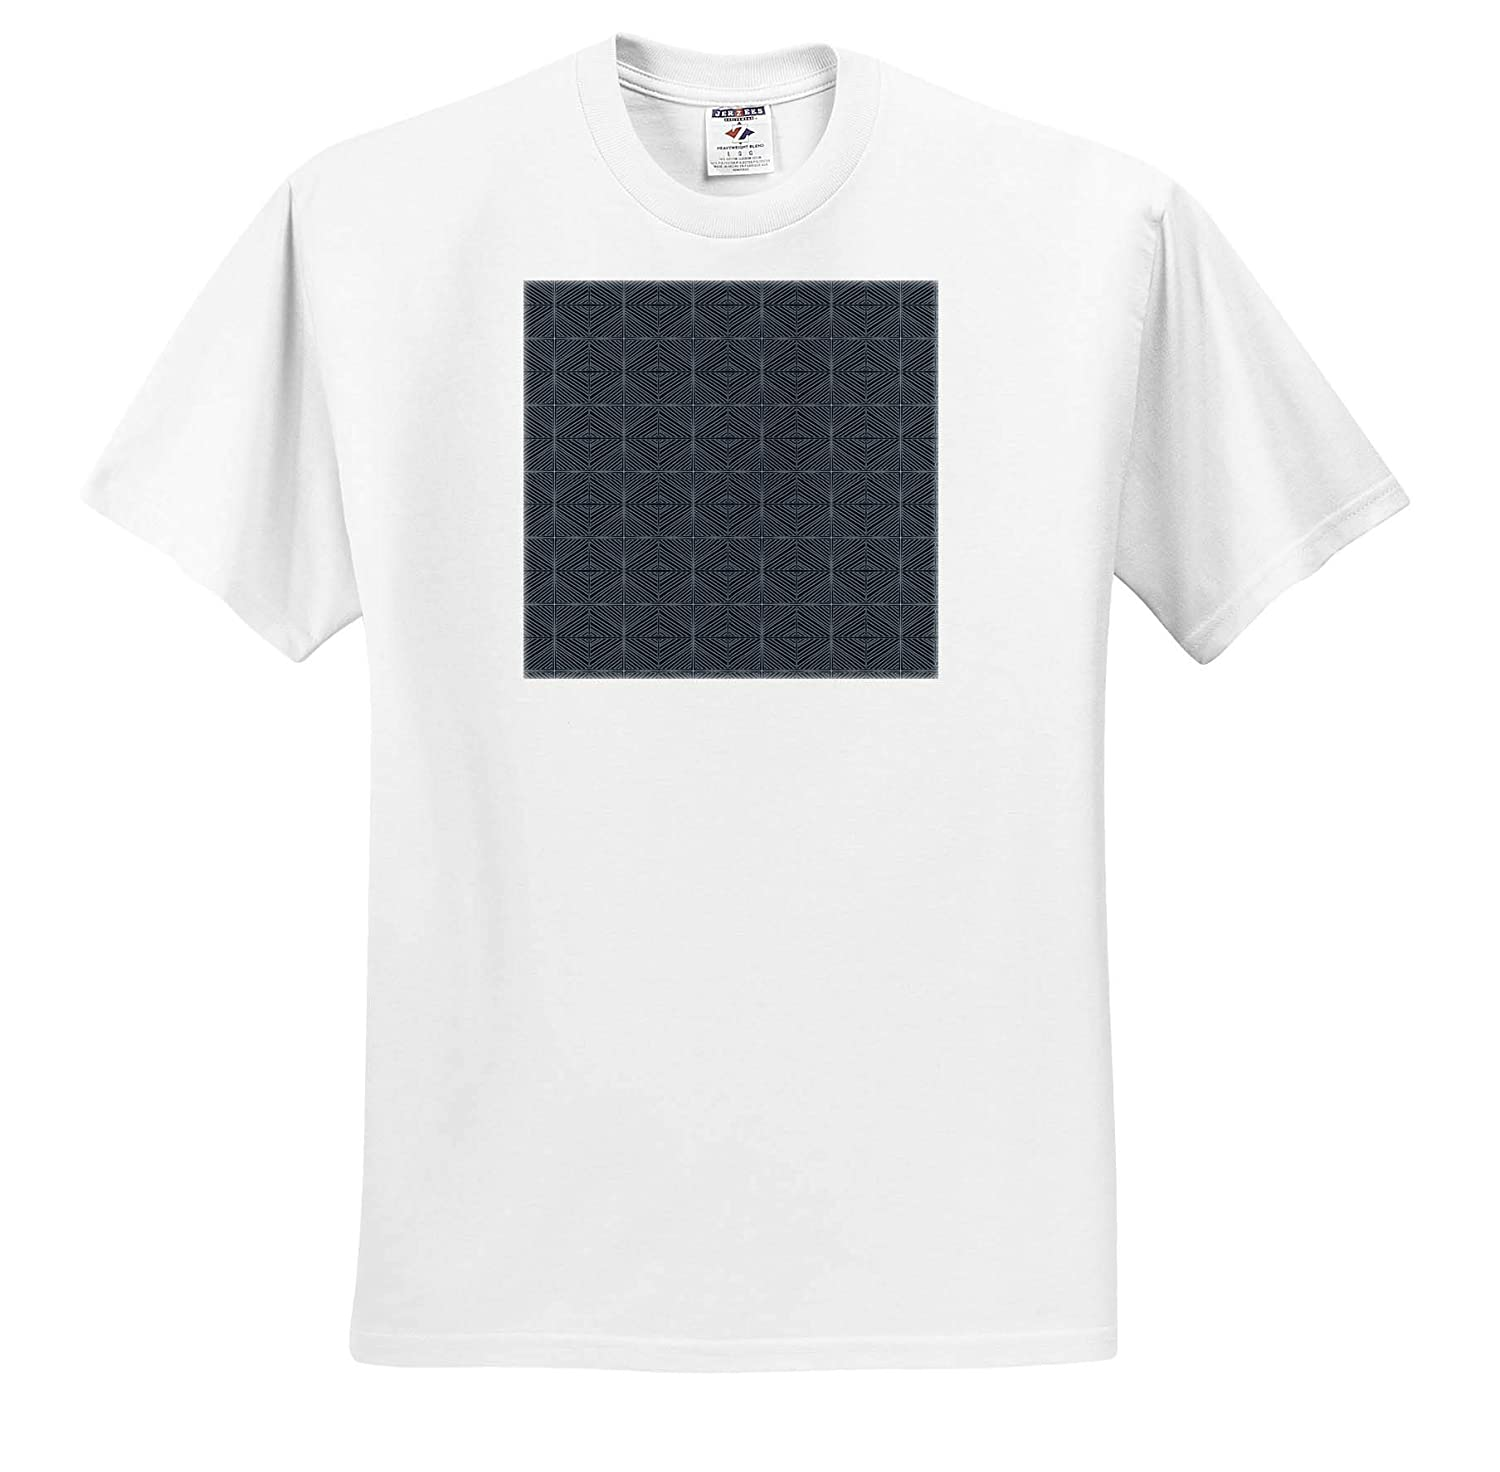 Lines on Black Simple Abstract Geometric Pattern of White Squares 3dRose Alexis Design T-Shirts Pattern Geometrical